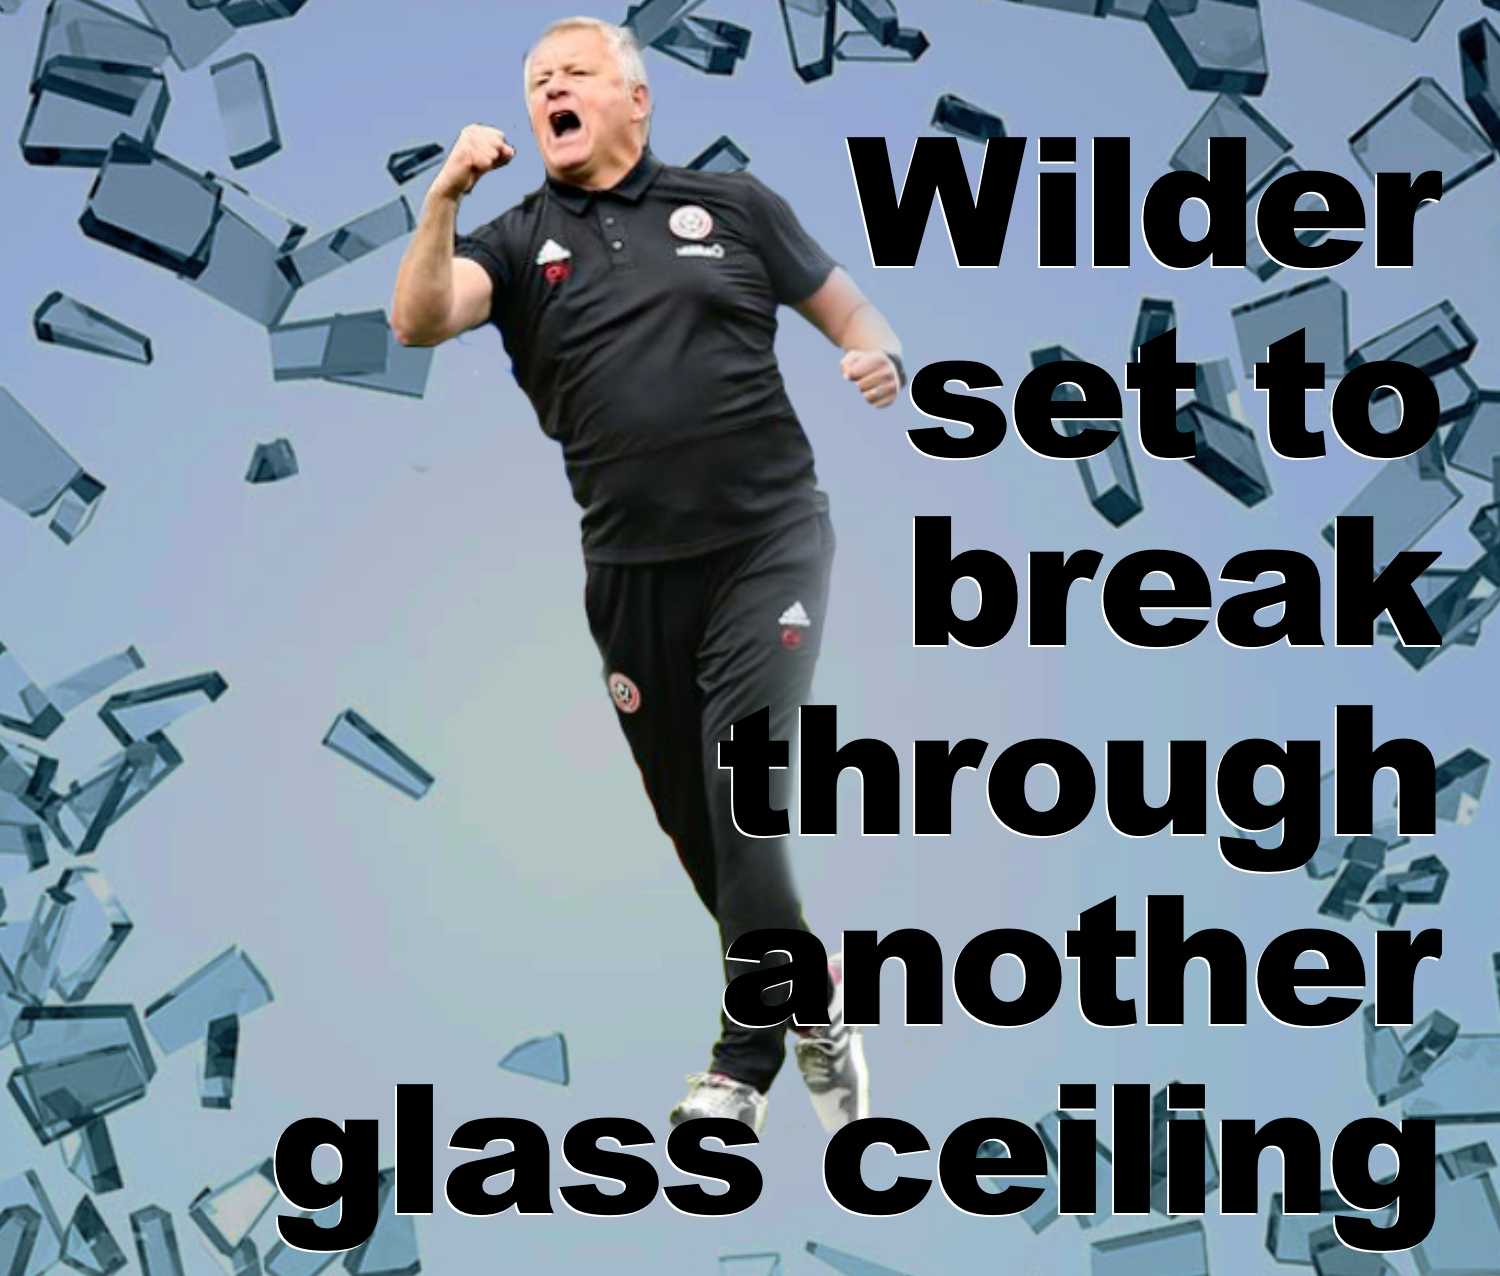 Sheffield United's amazing manager is all set to break another glass ceiling as the Blades return to the Premier League in style